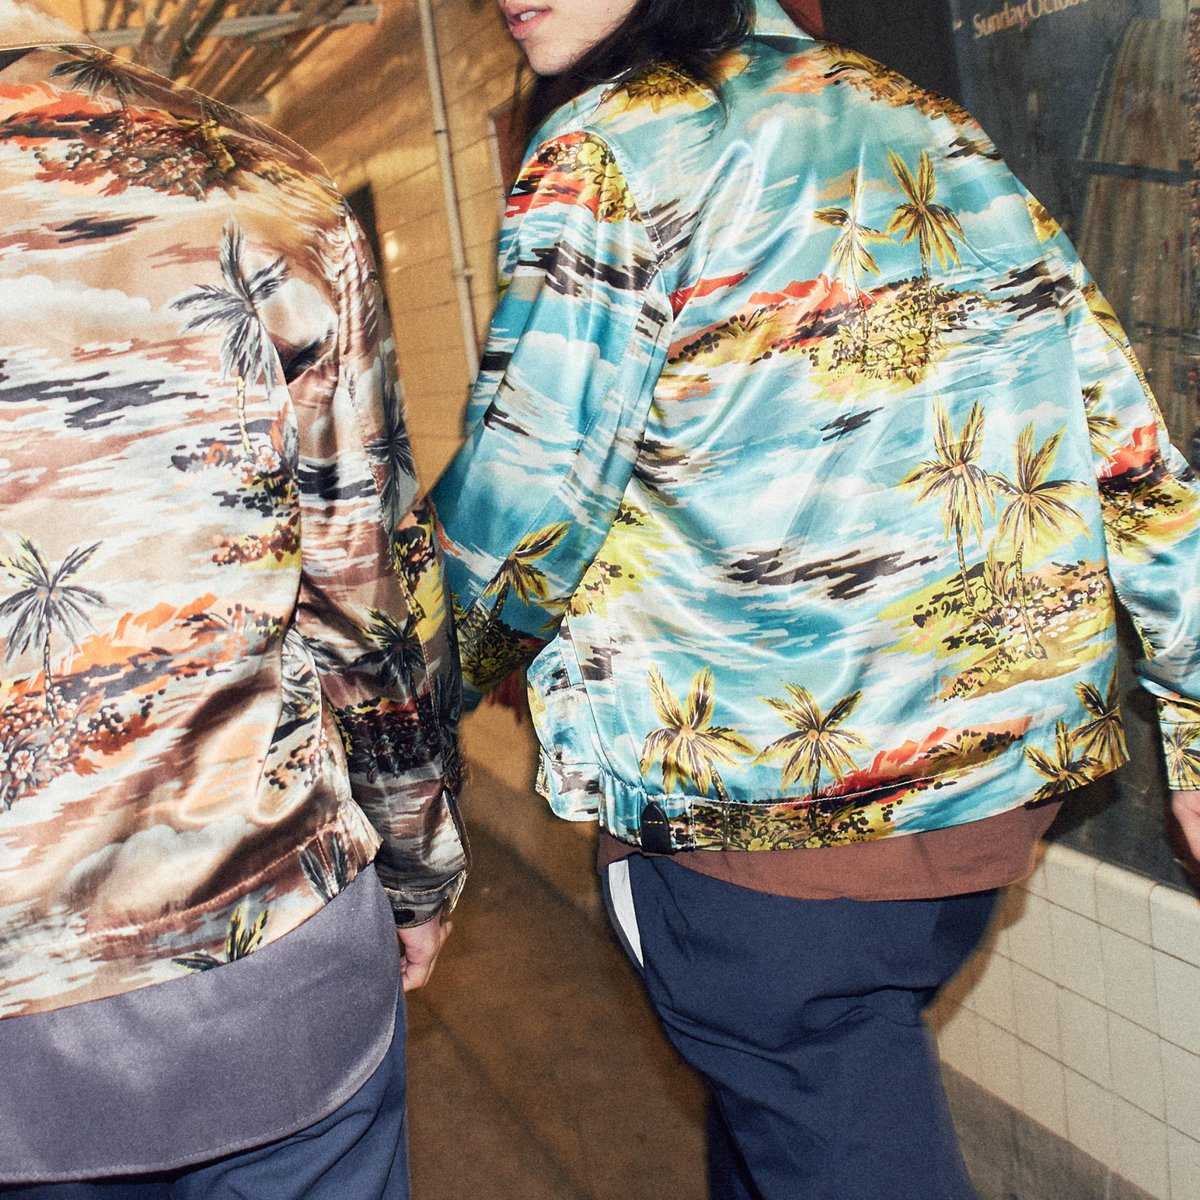 Island hopping—on the island of Manhattan that is. From the #CoachSS18 Men's collection, a pair of Hawaiian print skater jackets. #CoachNY https://t.co/AuEu6nkGe1